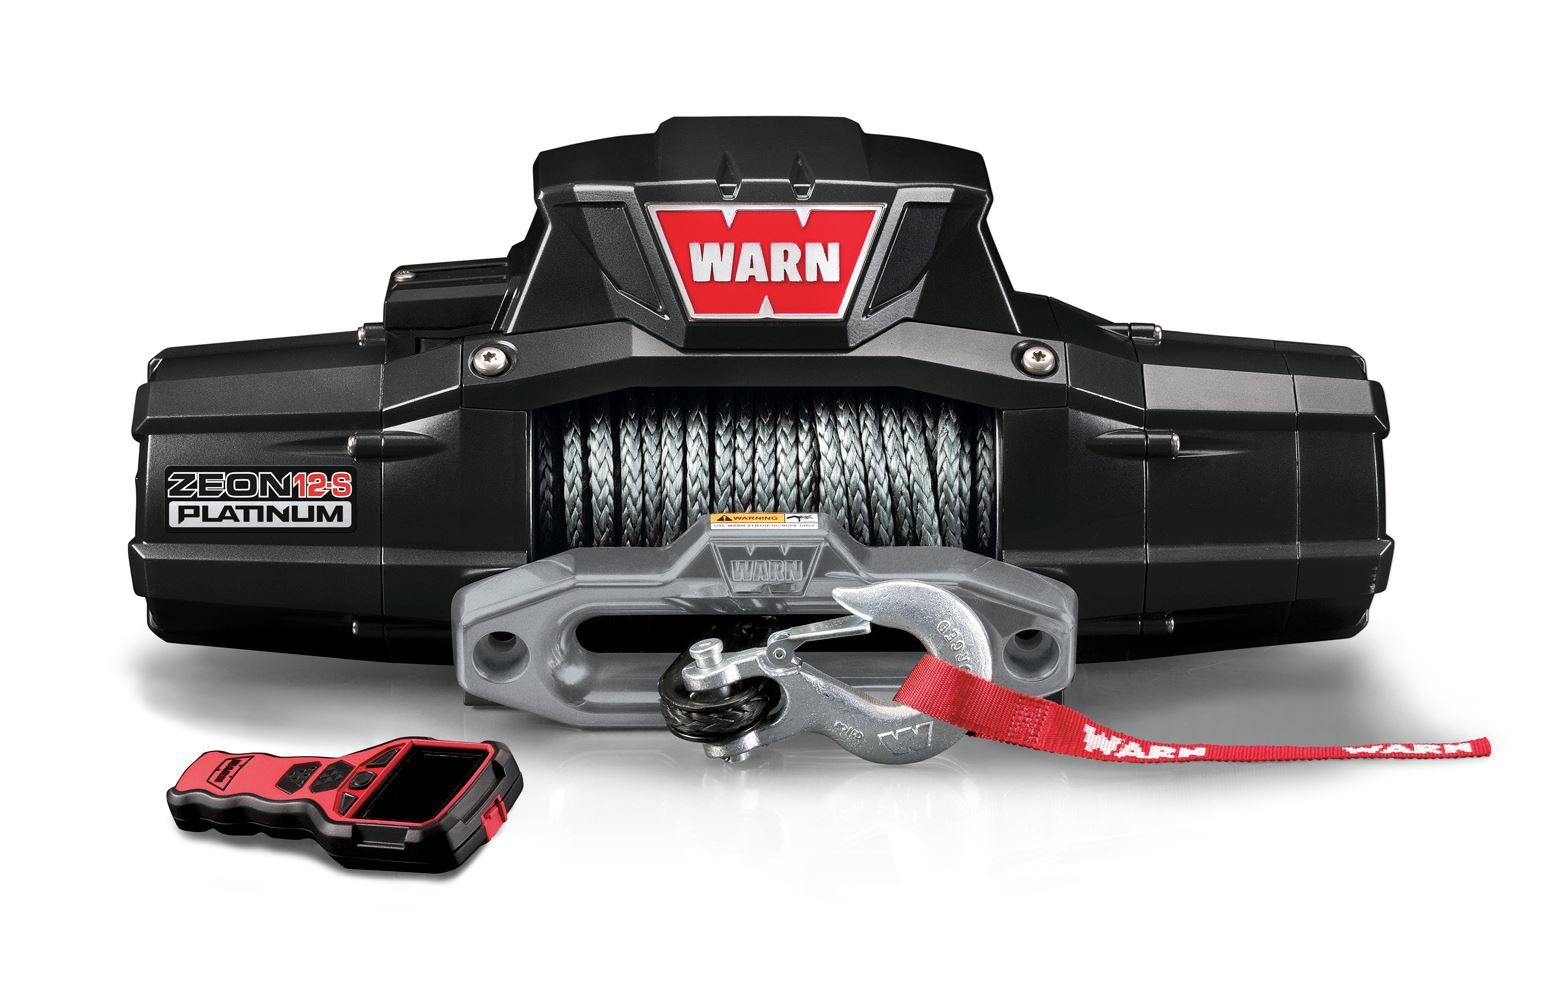 Warn Industries ZEON 12-S PLATINUM WINCH  95960